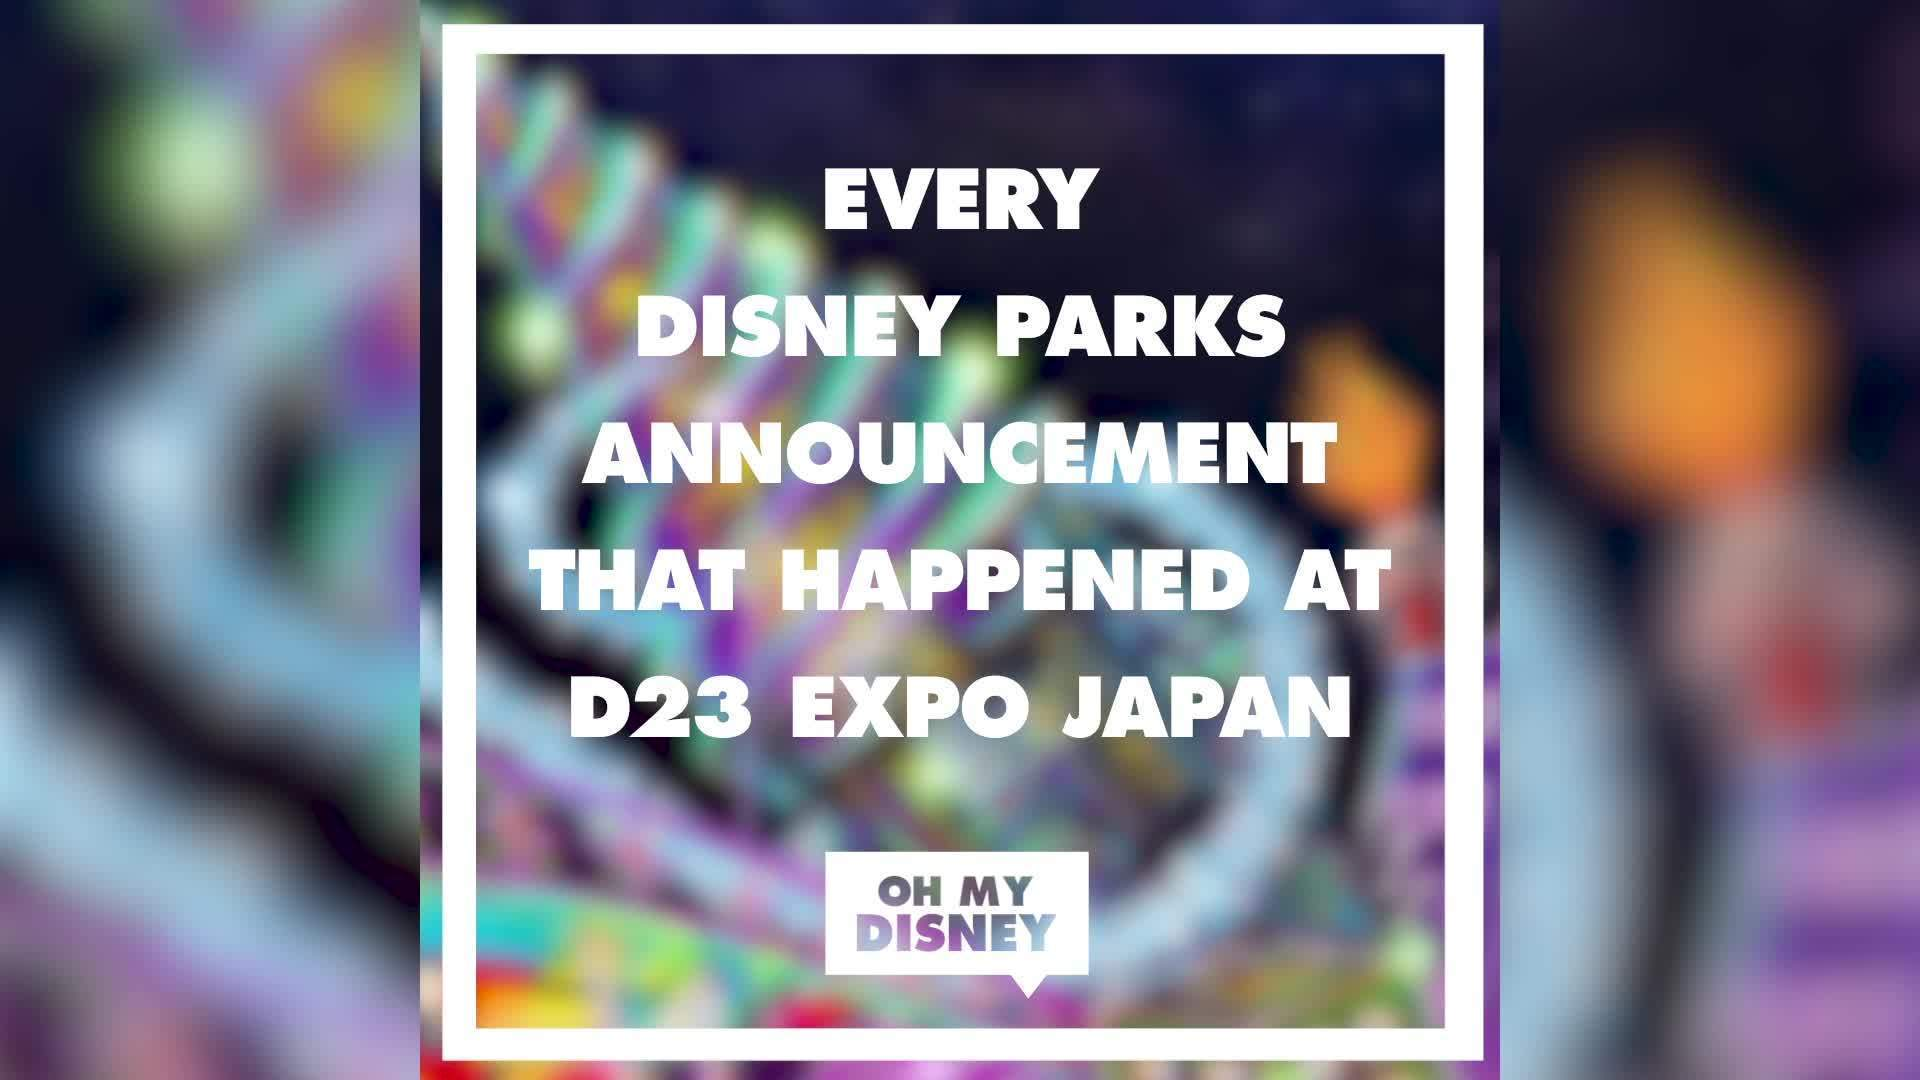 Every Disney Parks Announcement That Happened at D23 Expo Japan | News by Oh My Disney